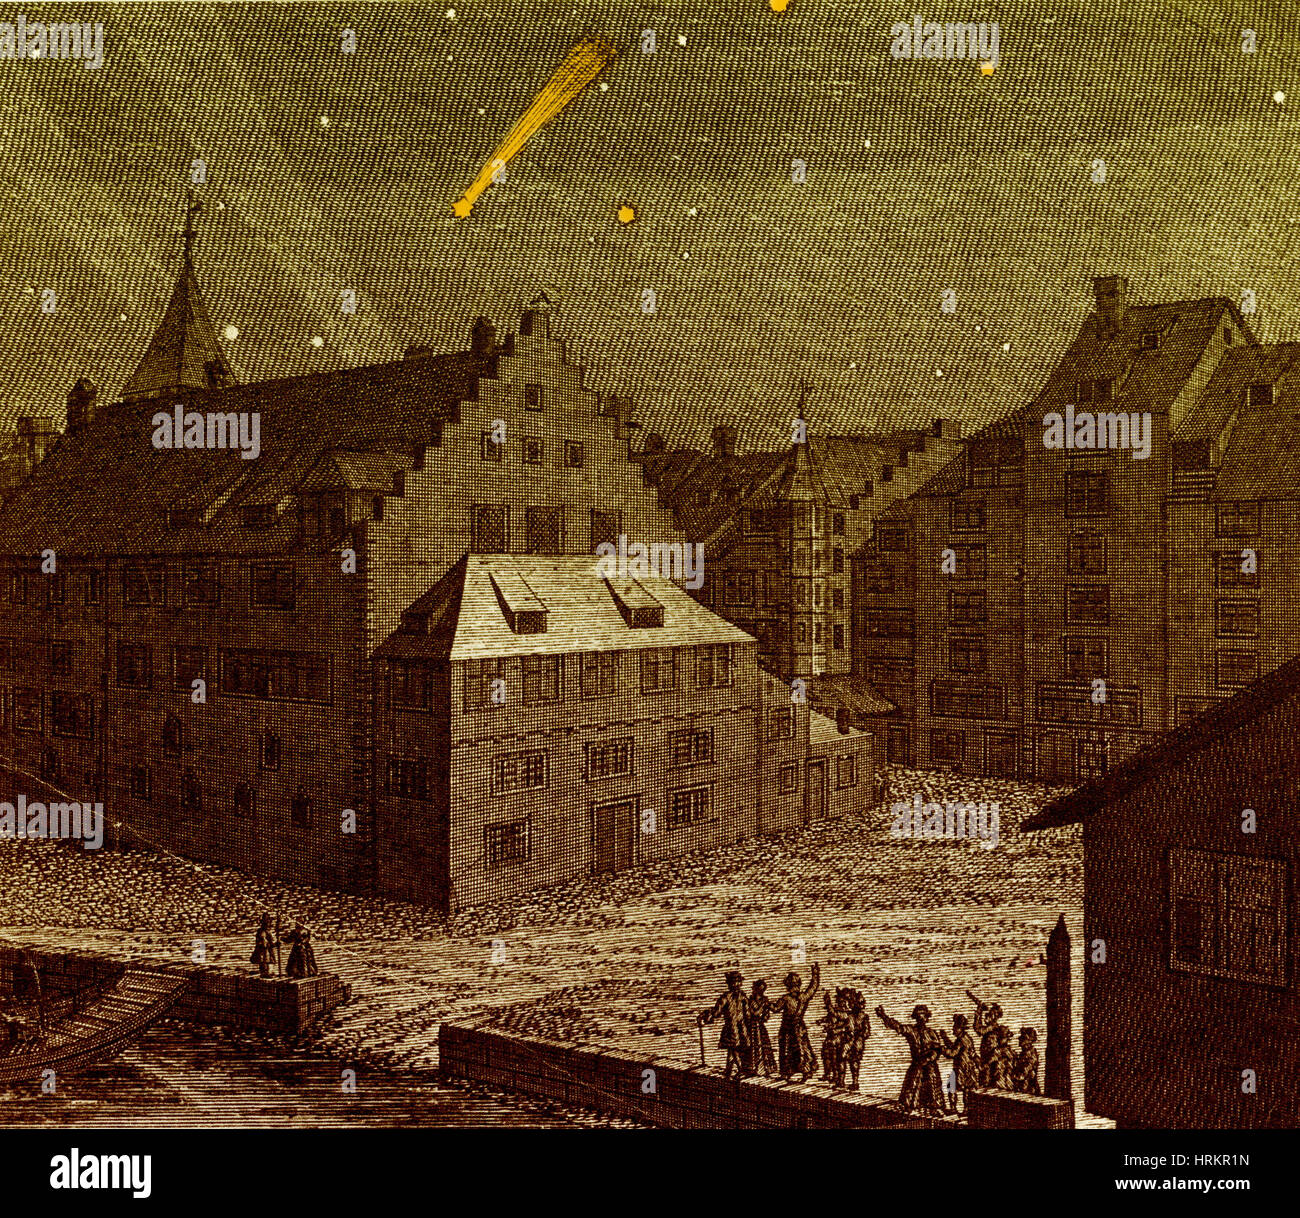 Comet, Einsiedeln Monastery, 1742 Stock Photo